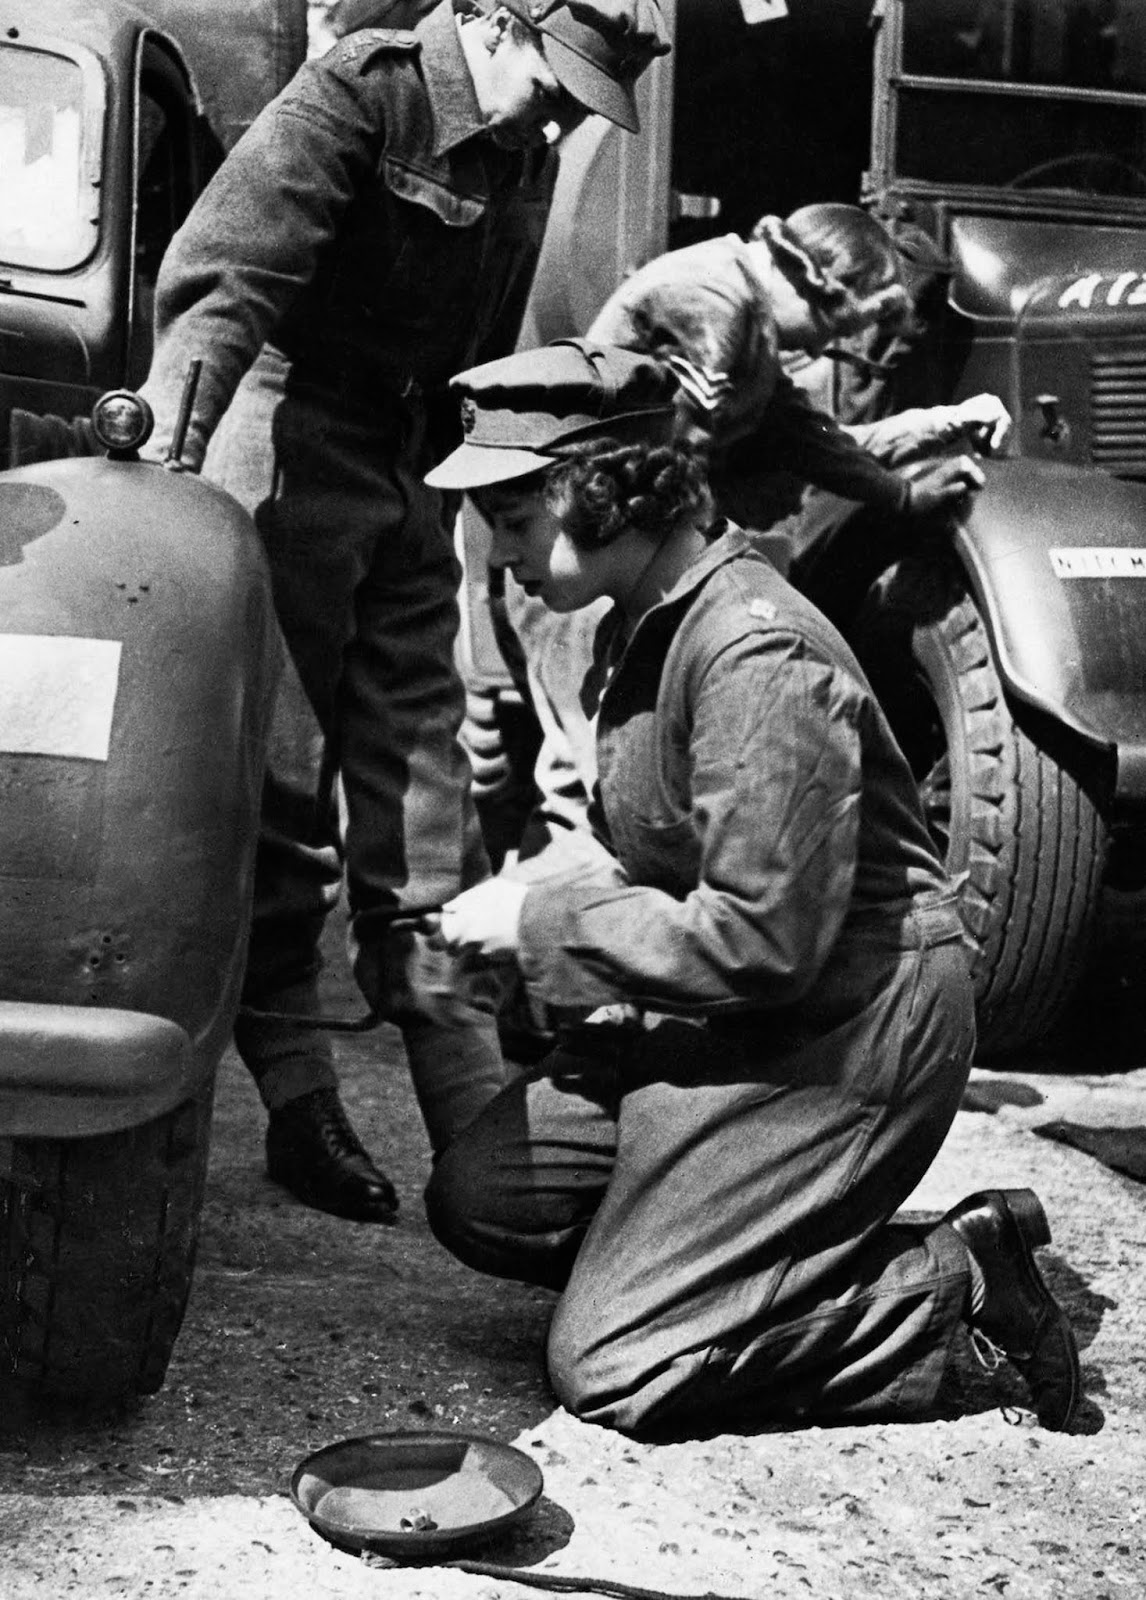 Queen Elizabeth II as a mechanic.